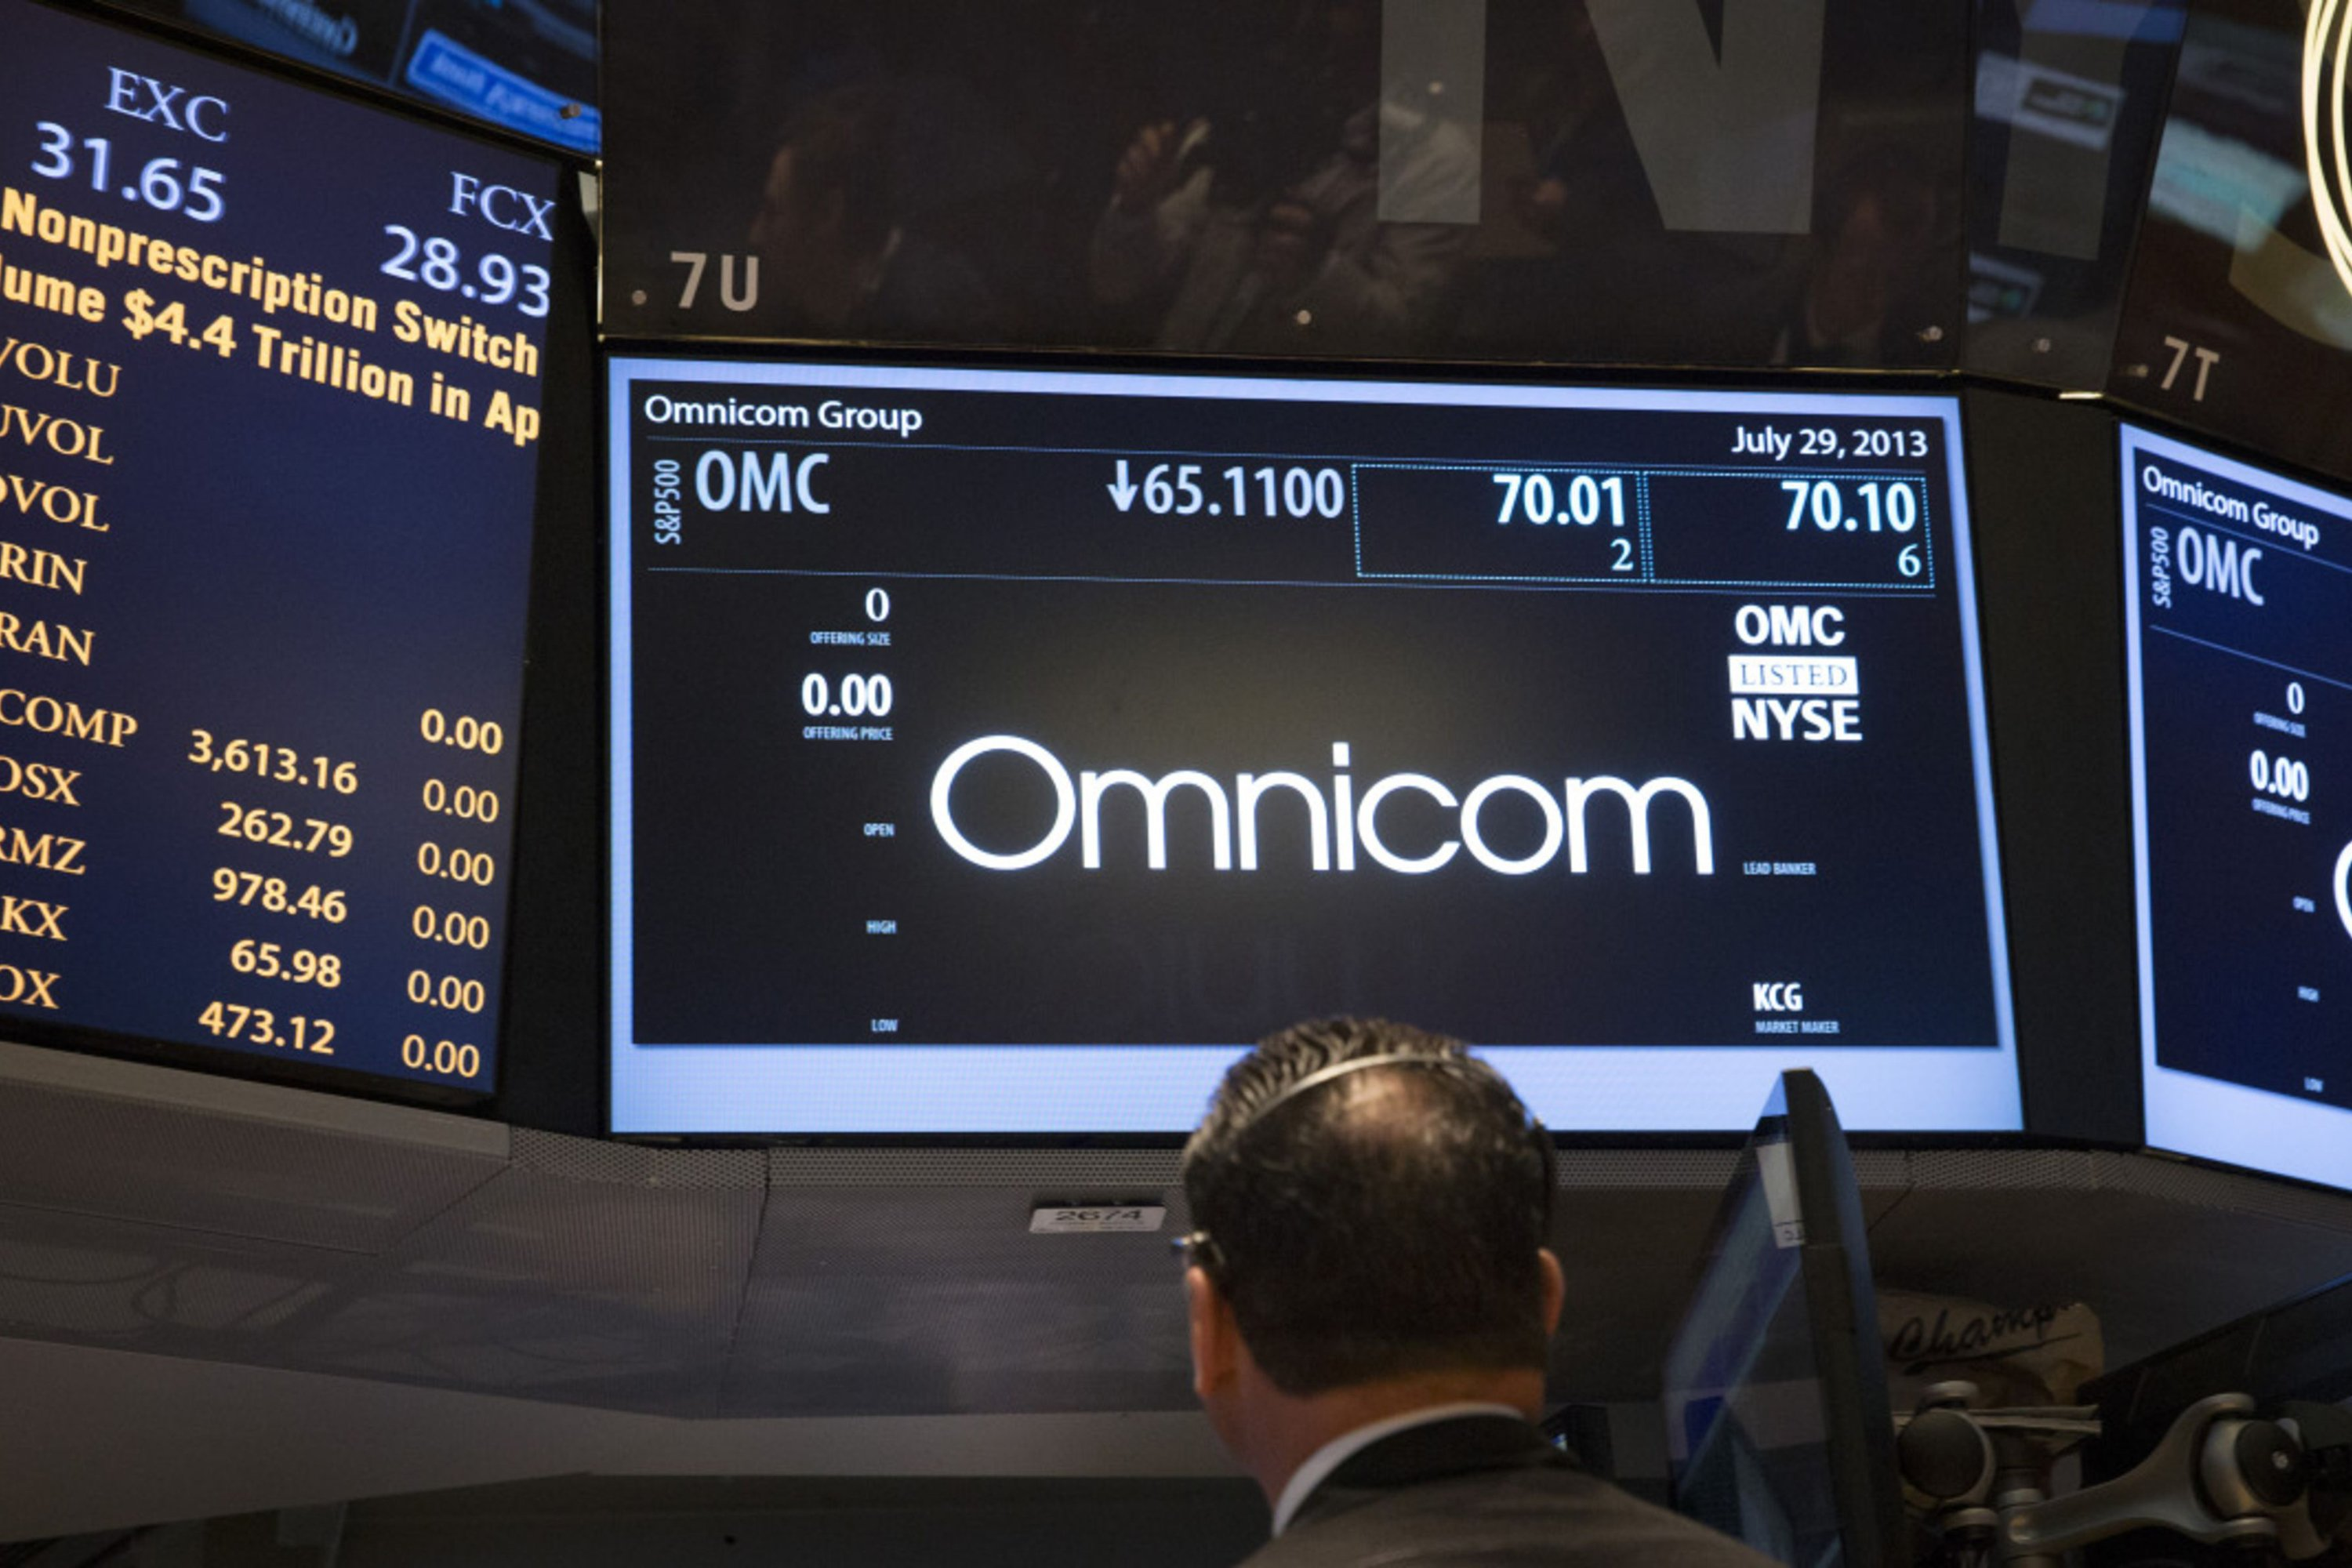 Omnicom sees light at the end of the tunnel for second quarter